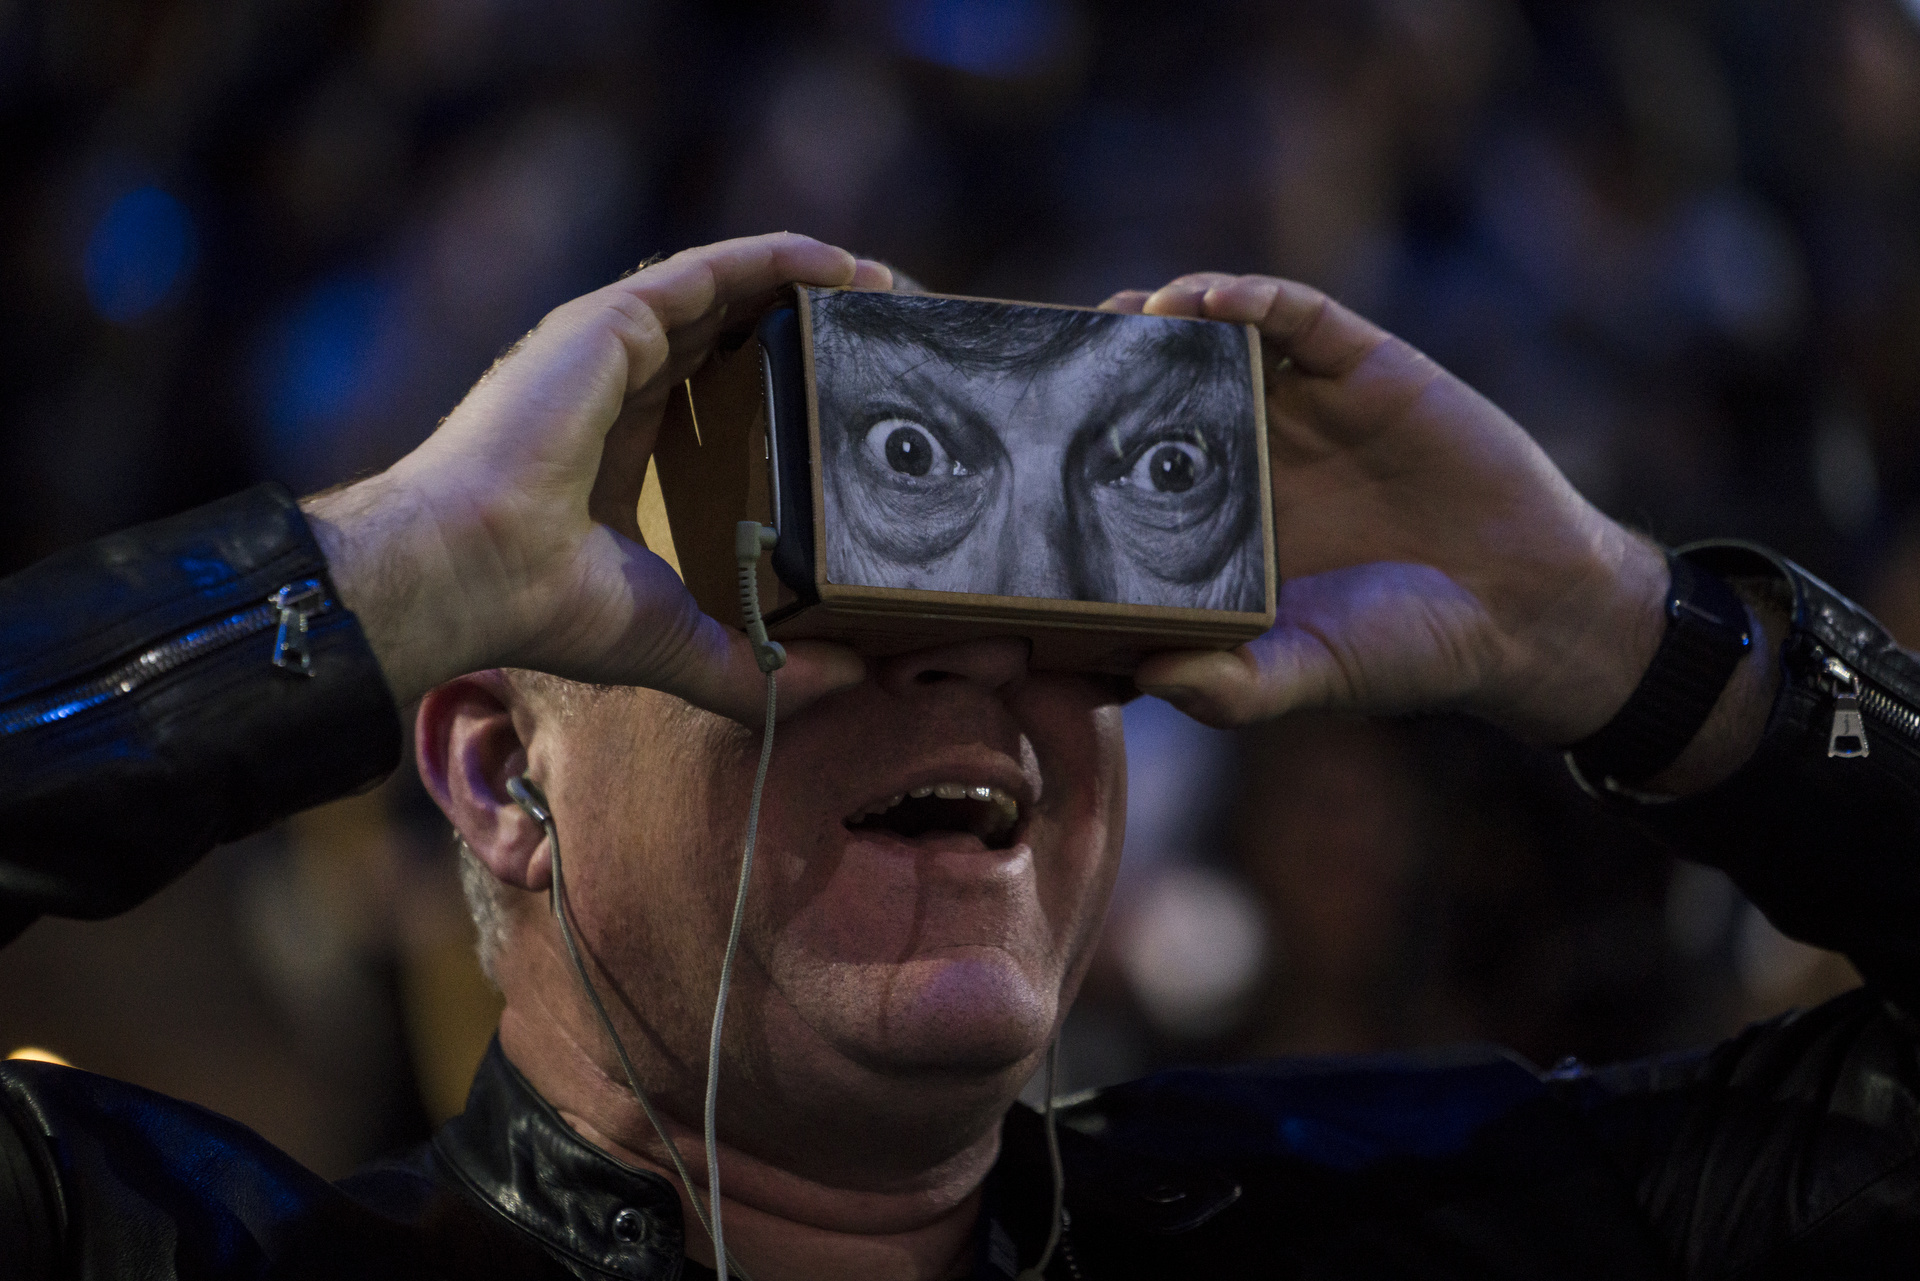 Chris Milk's virtual reality demo at TED2016 - Dream, February 15-19, 2016, Vancouver Convention Center, Vancouver, Canada. Photo: Bret Hartman / TED